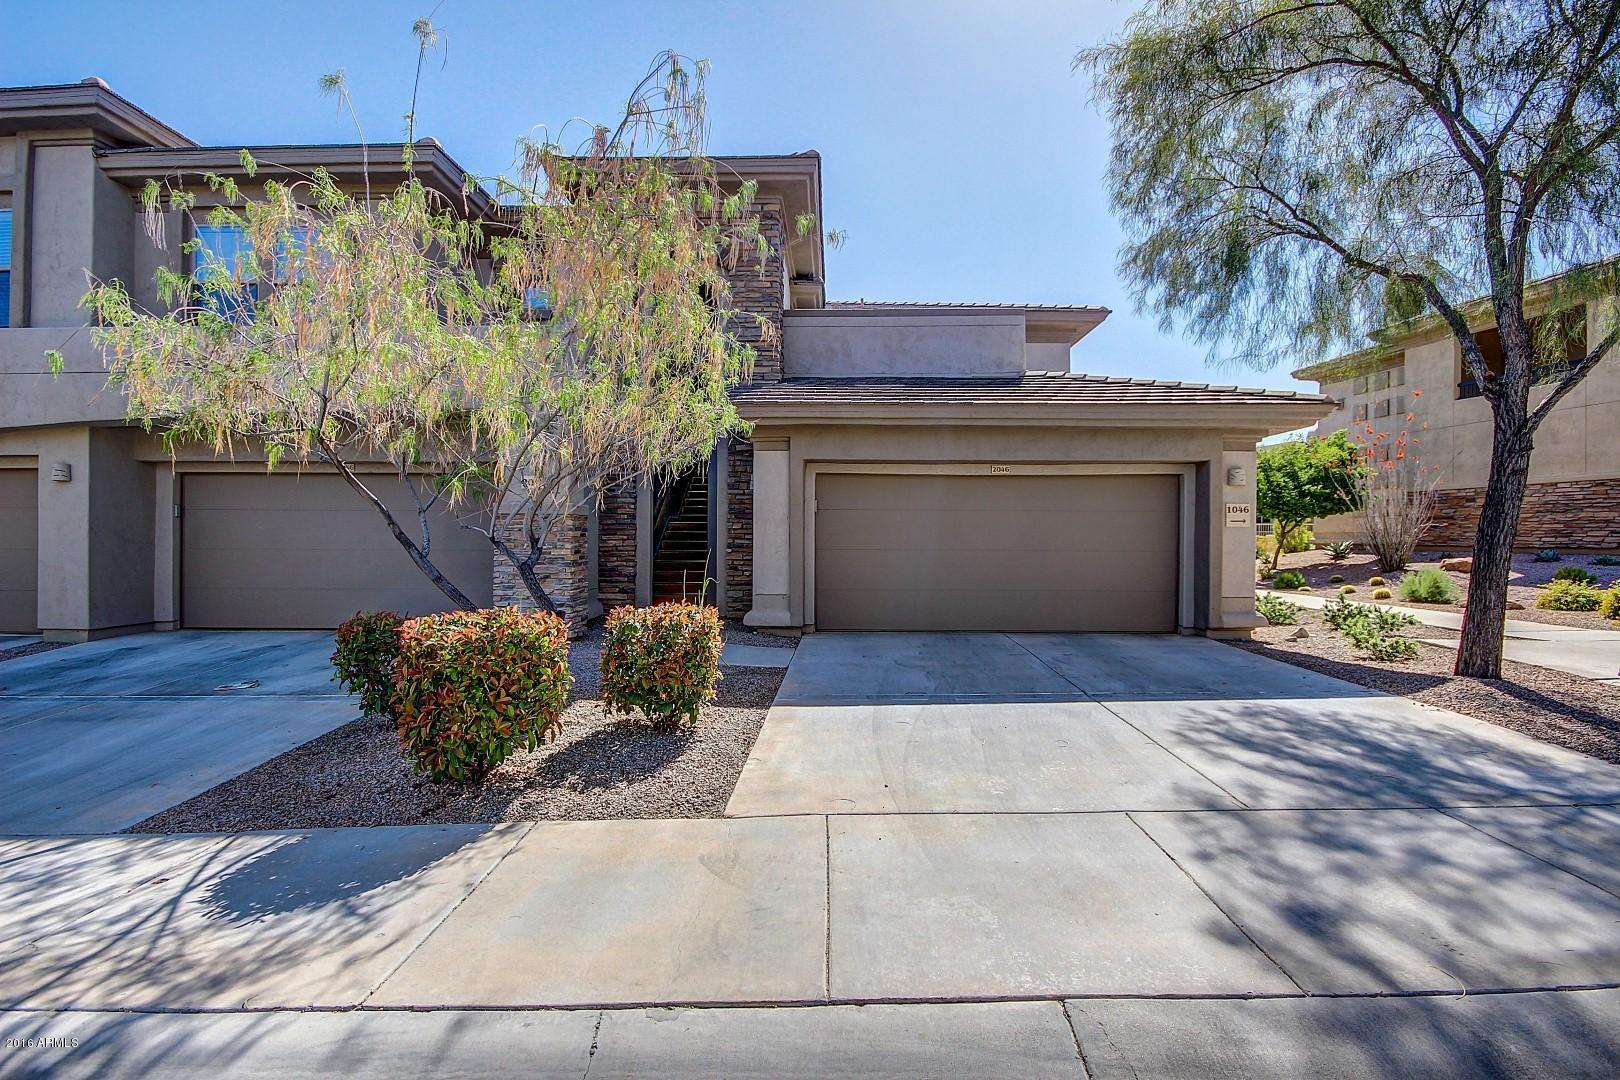 16800 E El Lago Boulevard, Unit 2046, Fountain Hills AZ 85268